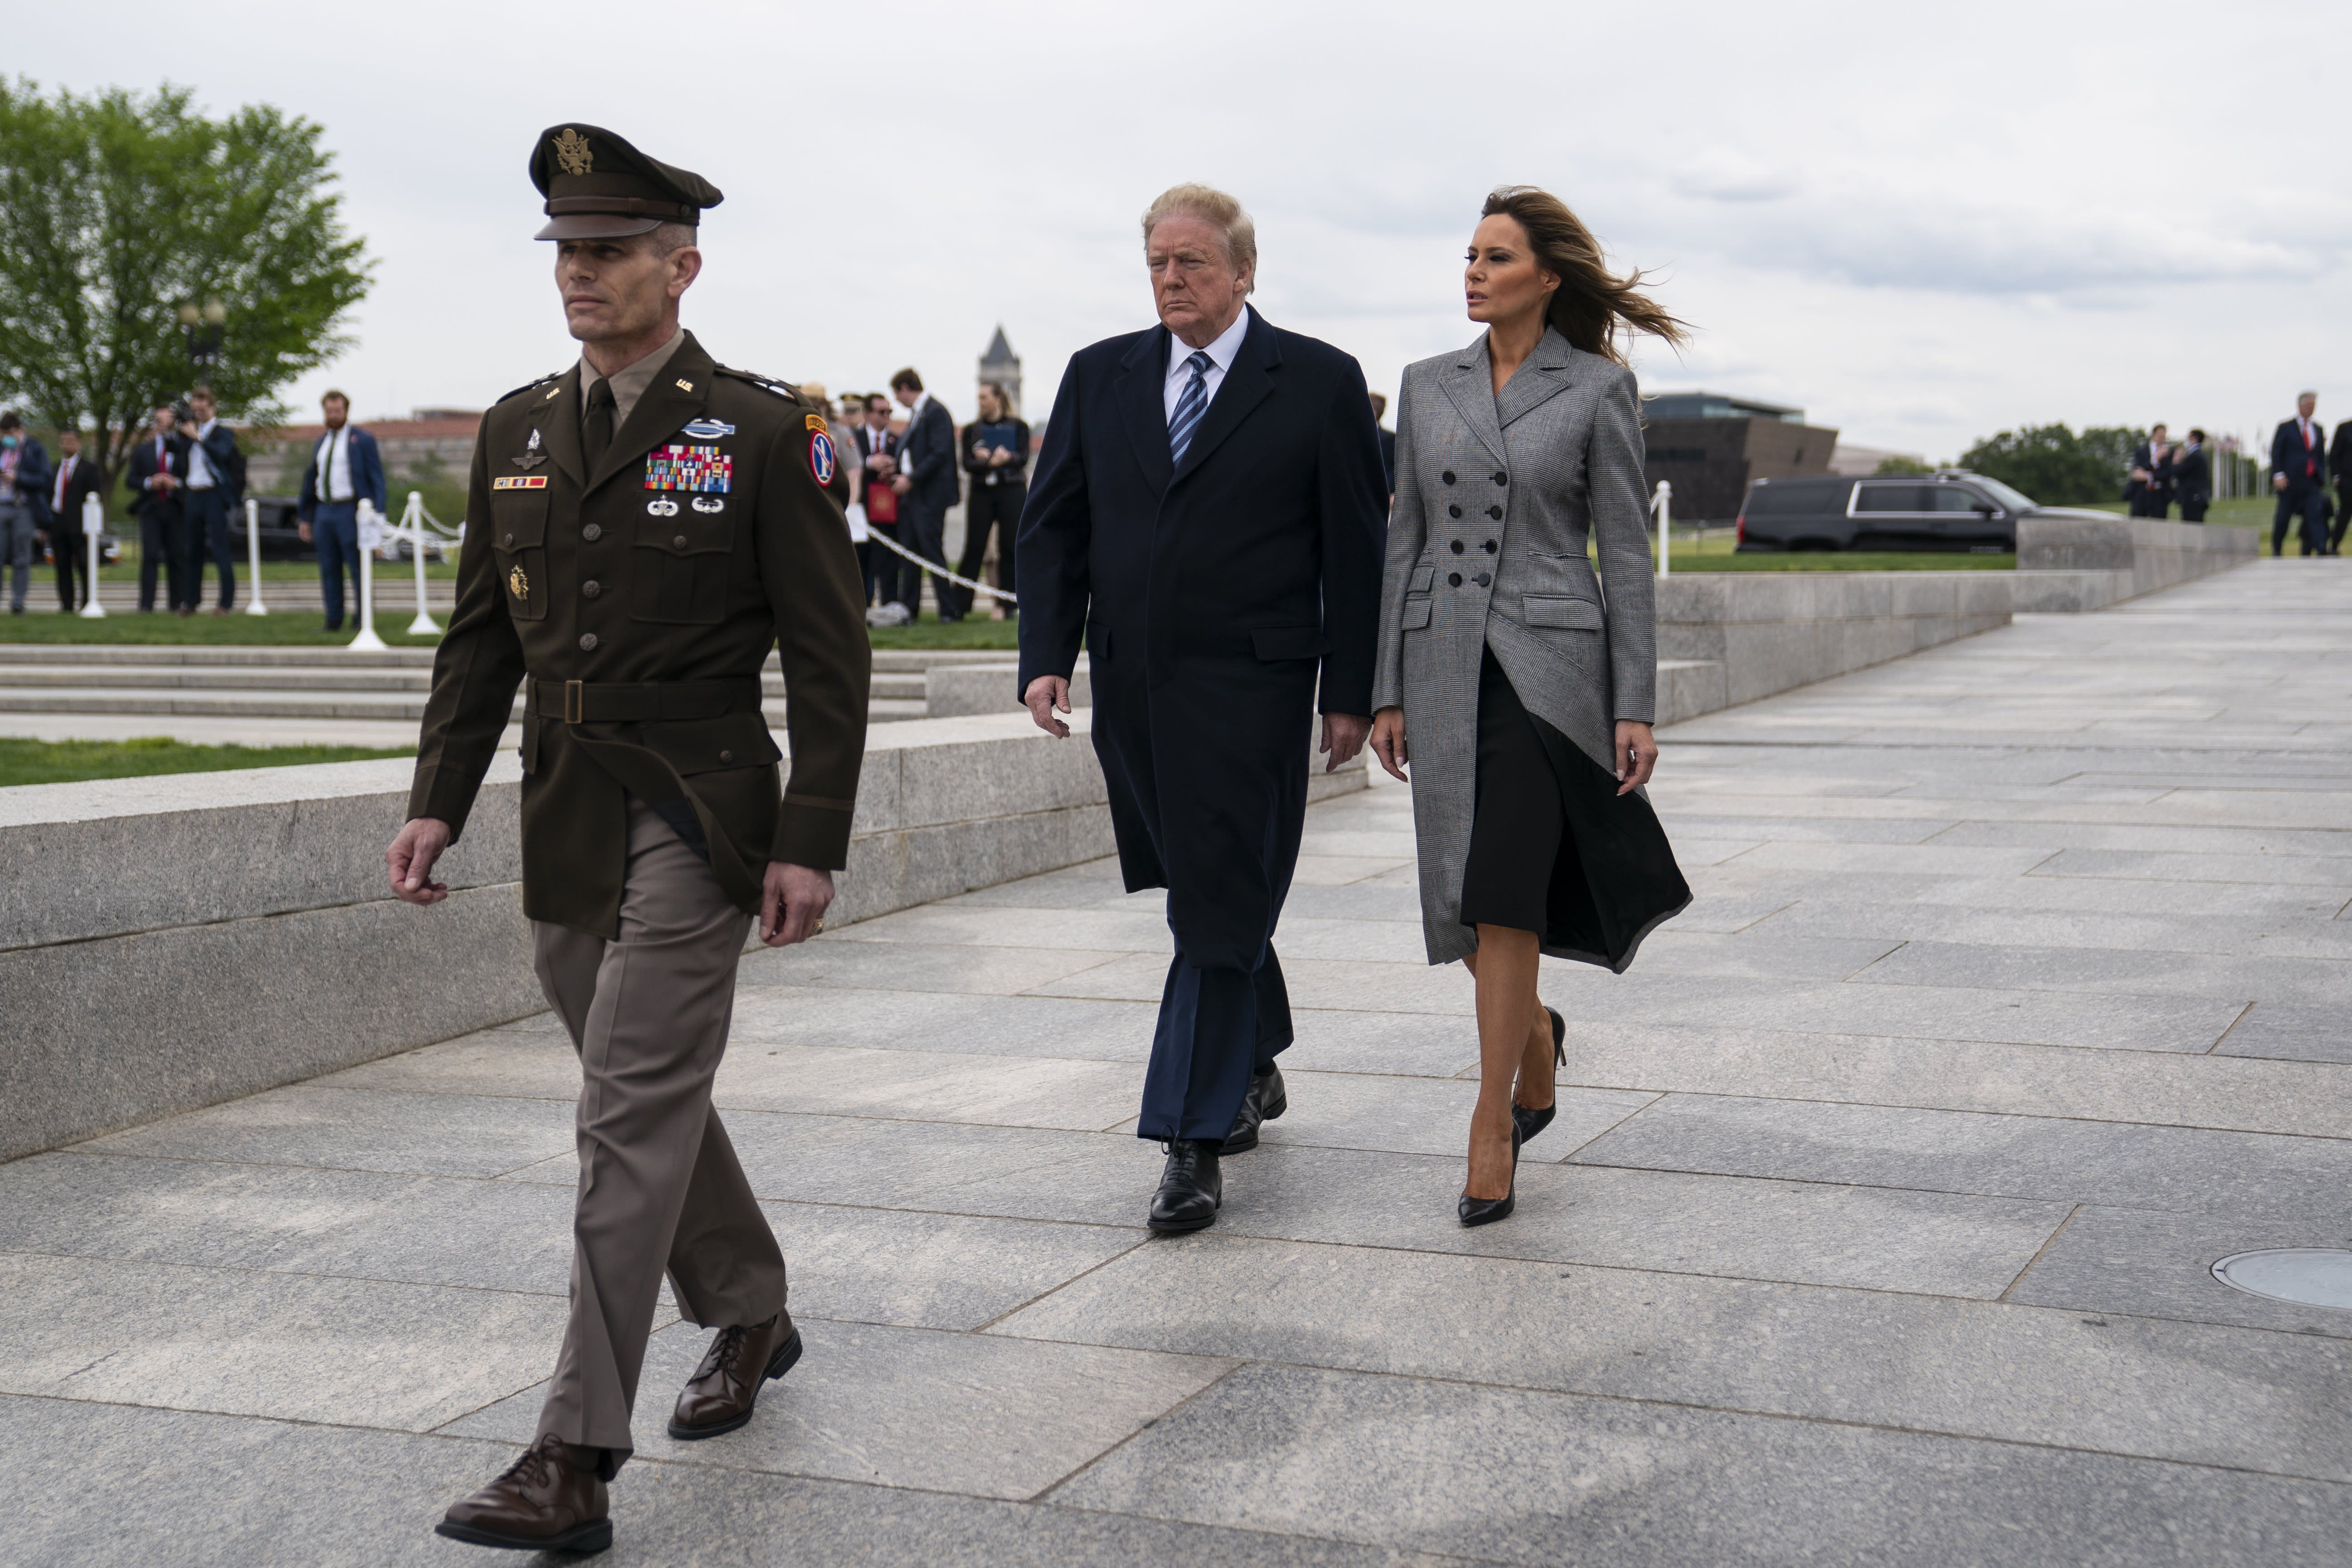 President Donald Trump and first lady Melania Trump arrive to participate in a wreath laying ceremony at the World War II Memorial to commemorate the 75th anniversary of Victory in Europe Day, Friday, May 8, 2020, in Washington. (AP Photo/Evan Vucci)